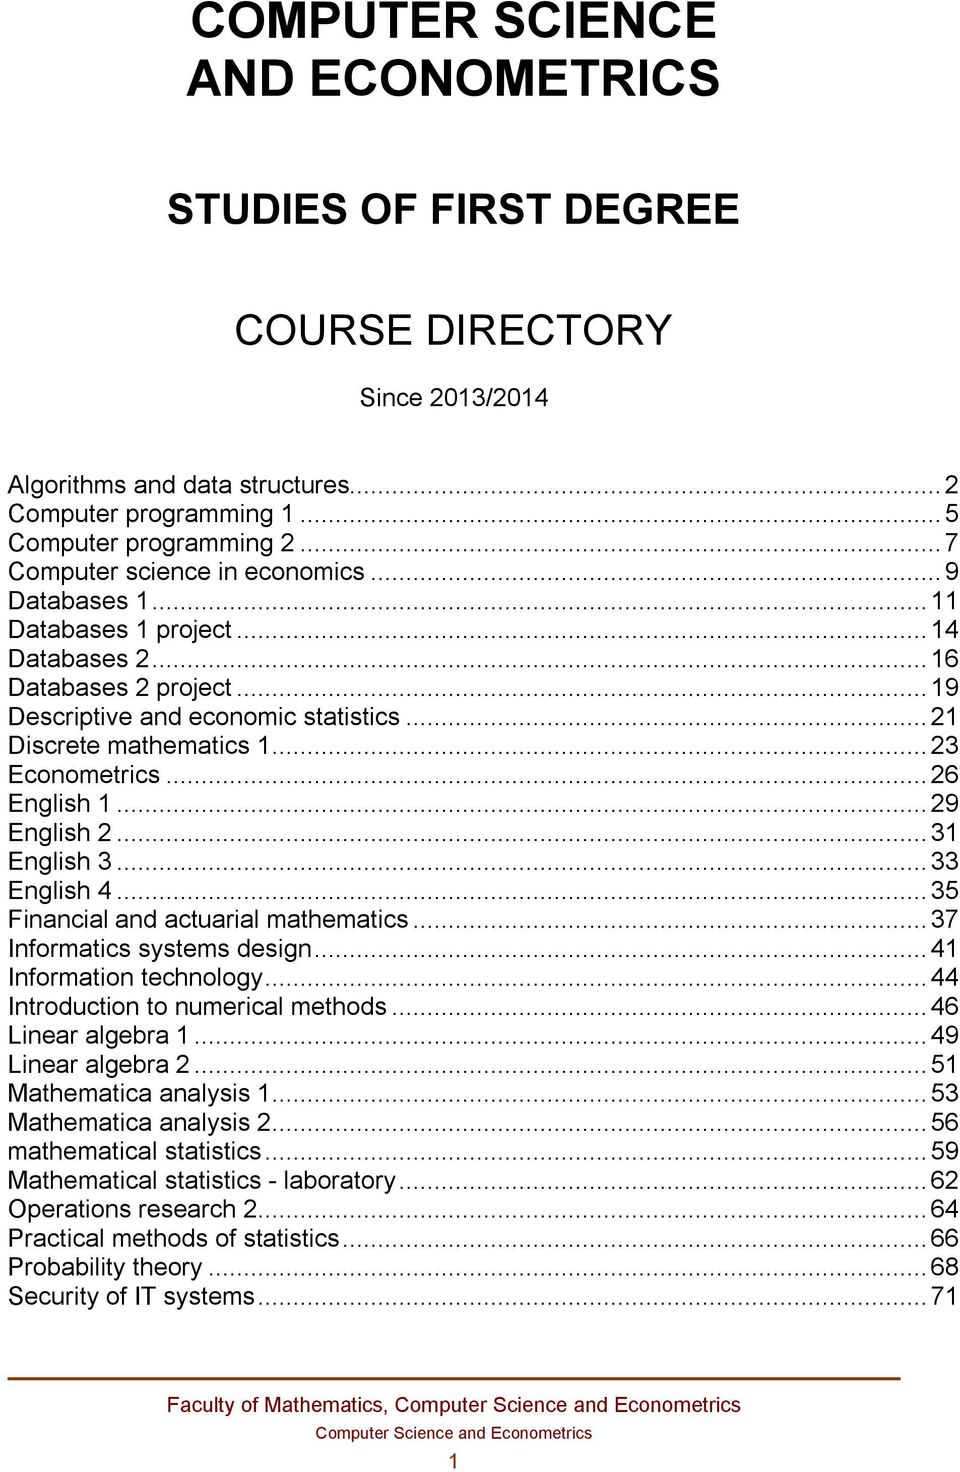 .. 23 Econometrics... 26 English 1... 29 English 2... 31 English 3... 33 English 4... 35 Financial and actuarial mathematics... 37 Informatics systems design... 41 Information technology.